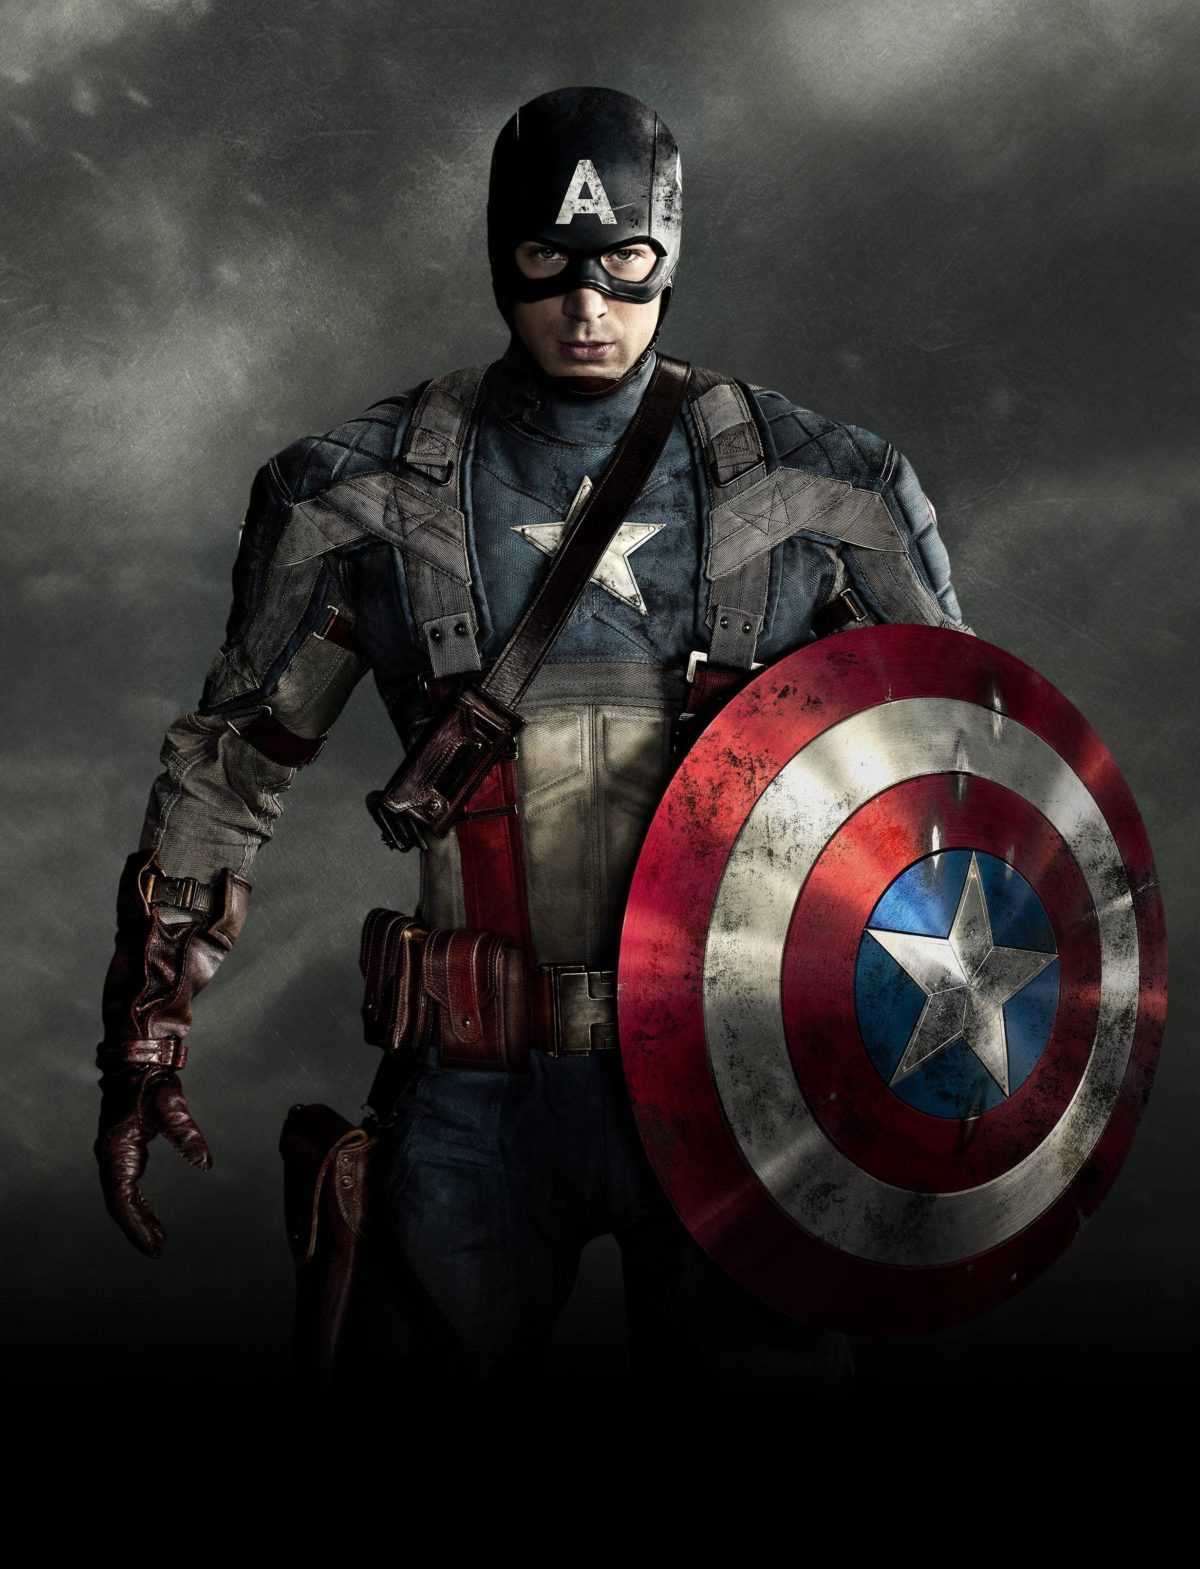 Amazing 46 Wallpapers of Captain America, Top Captain America …